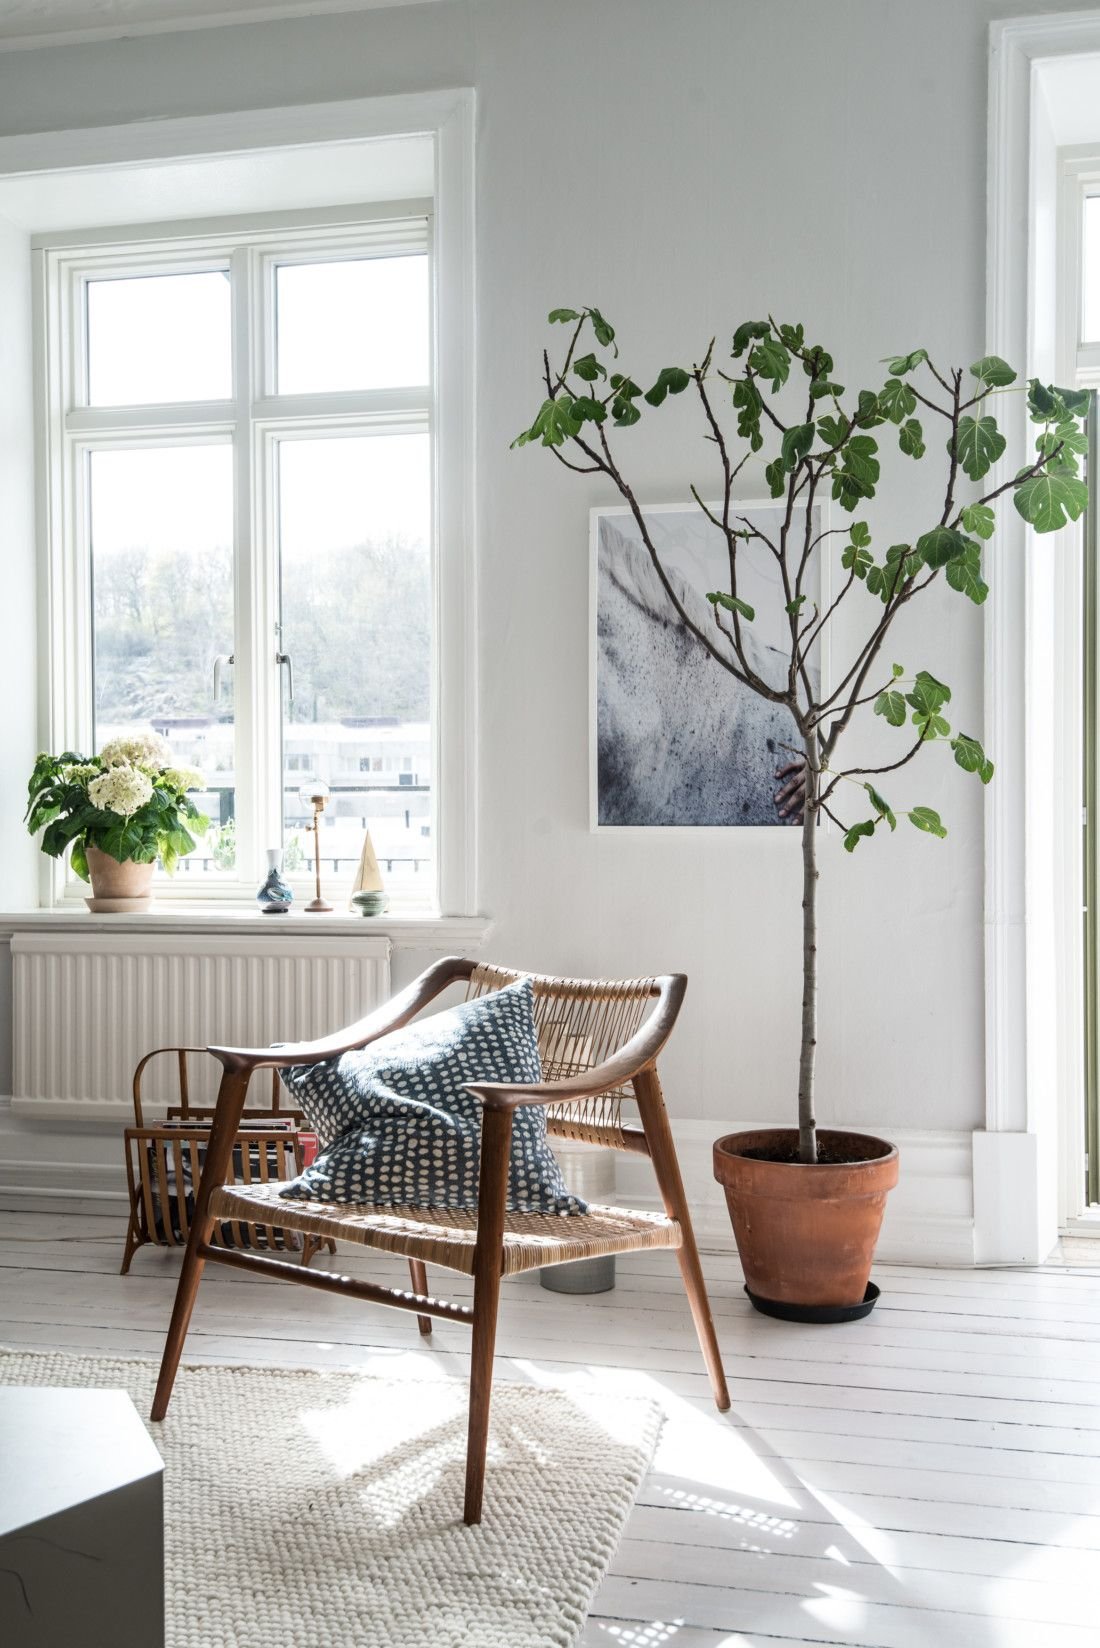 Minimalist Living Space Indoor Plants Tiny Tree Wooden Arm Chair Minimalist Home Cozy